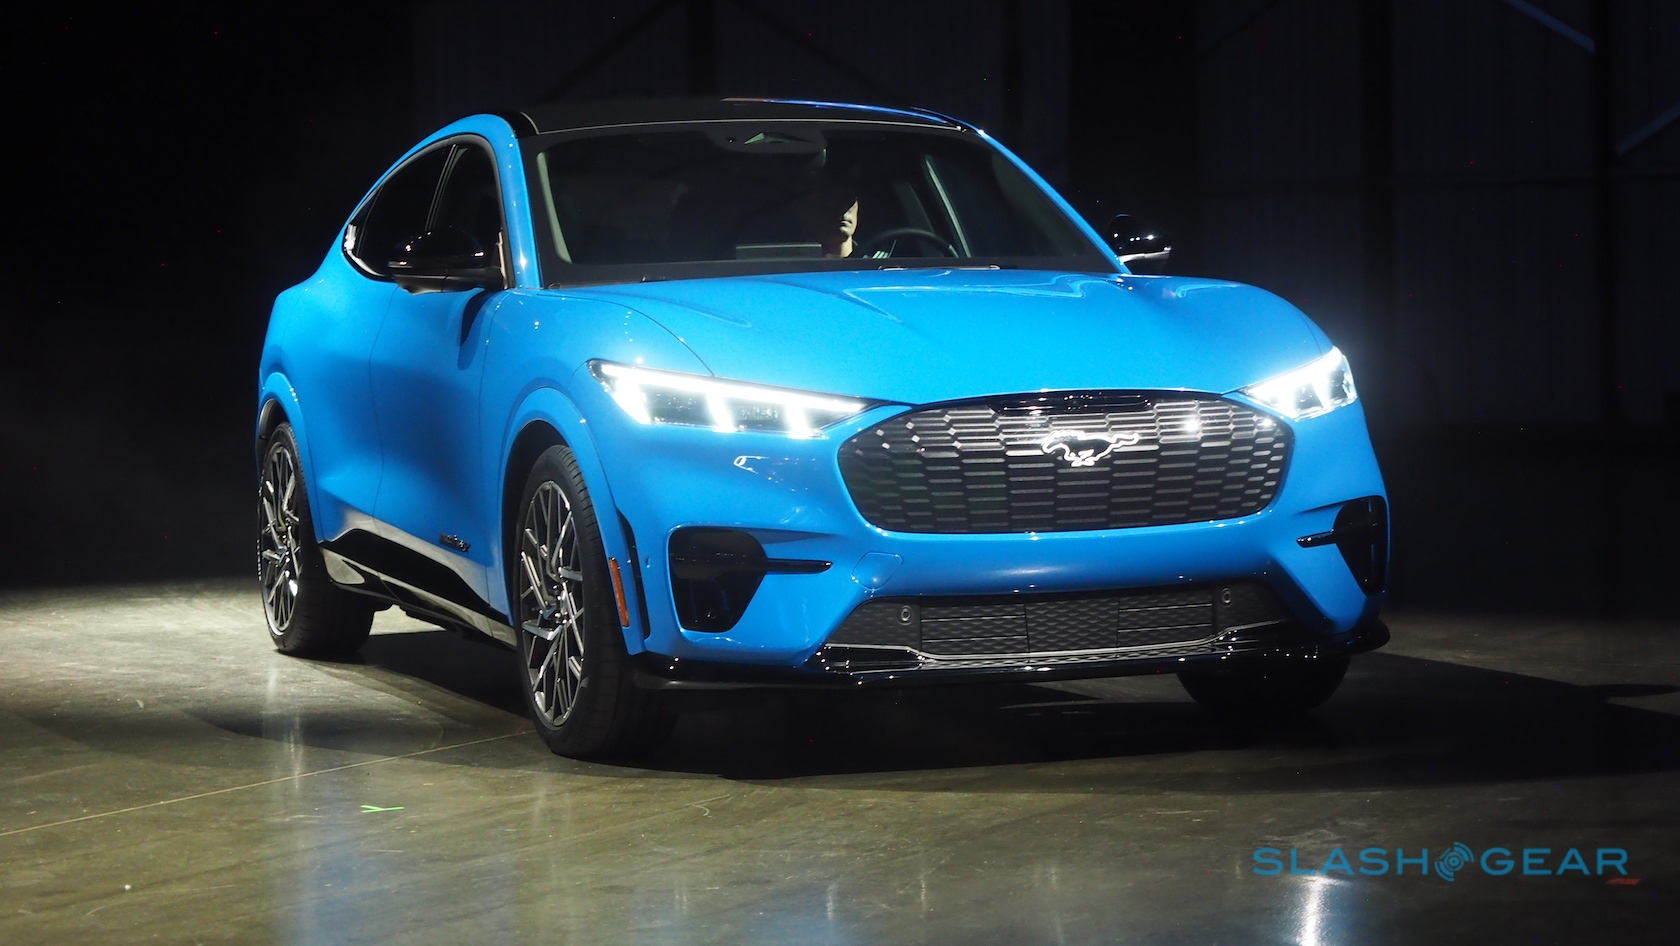 Ford Mustang Mach-E first look: Electric SUV takes on Tesla